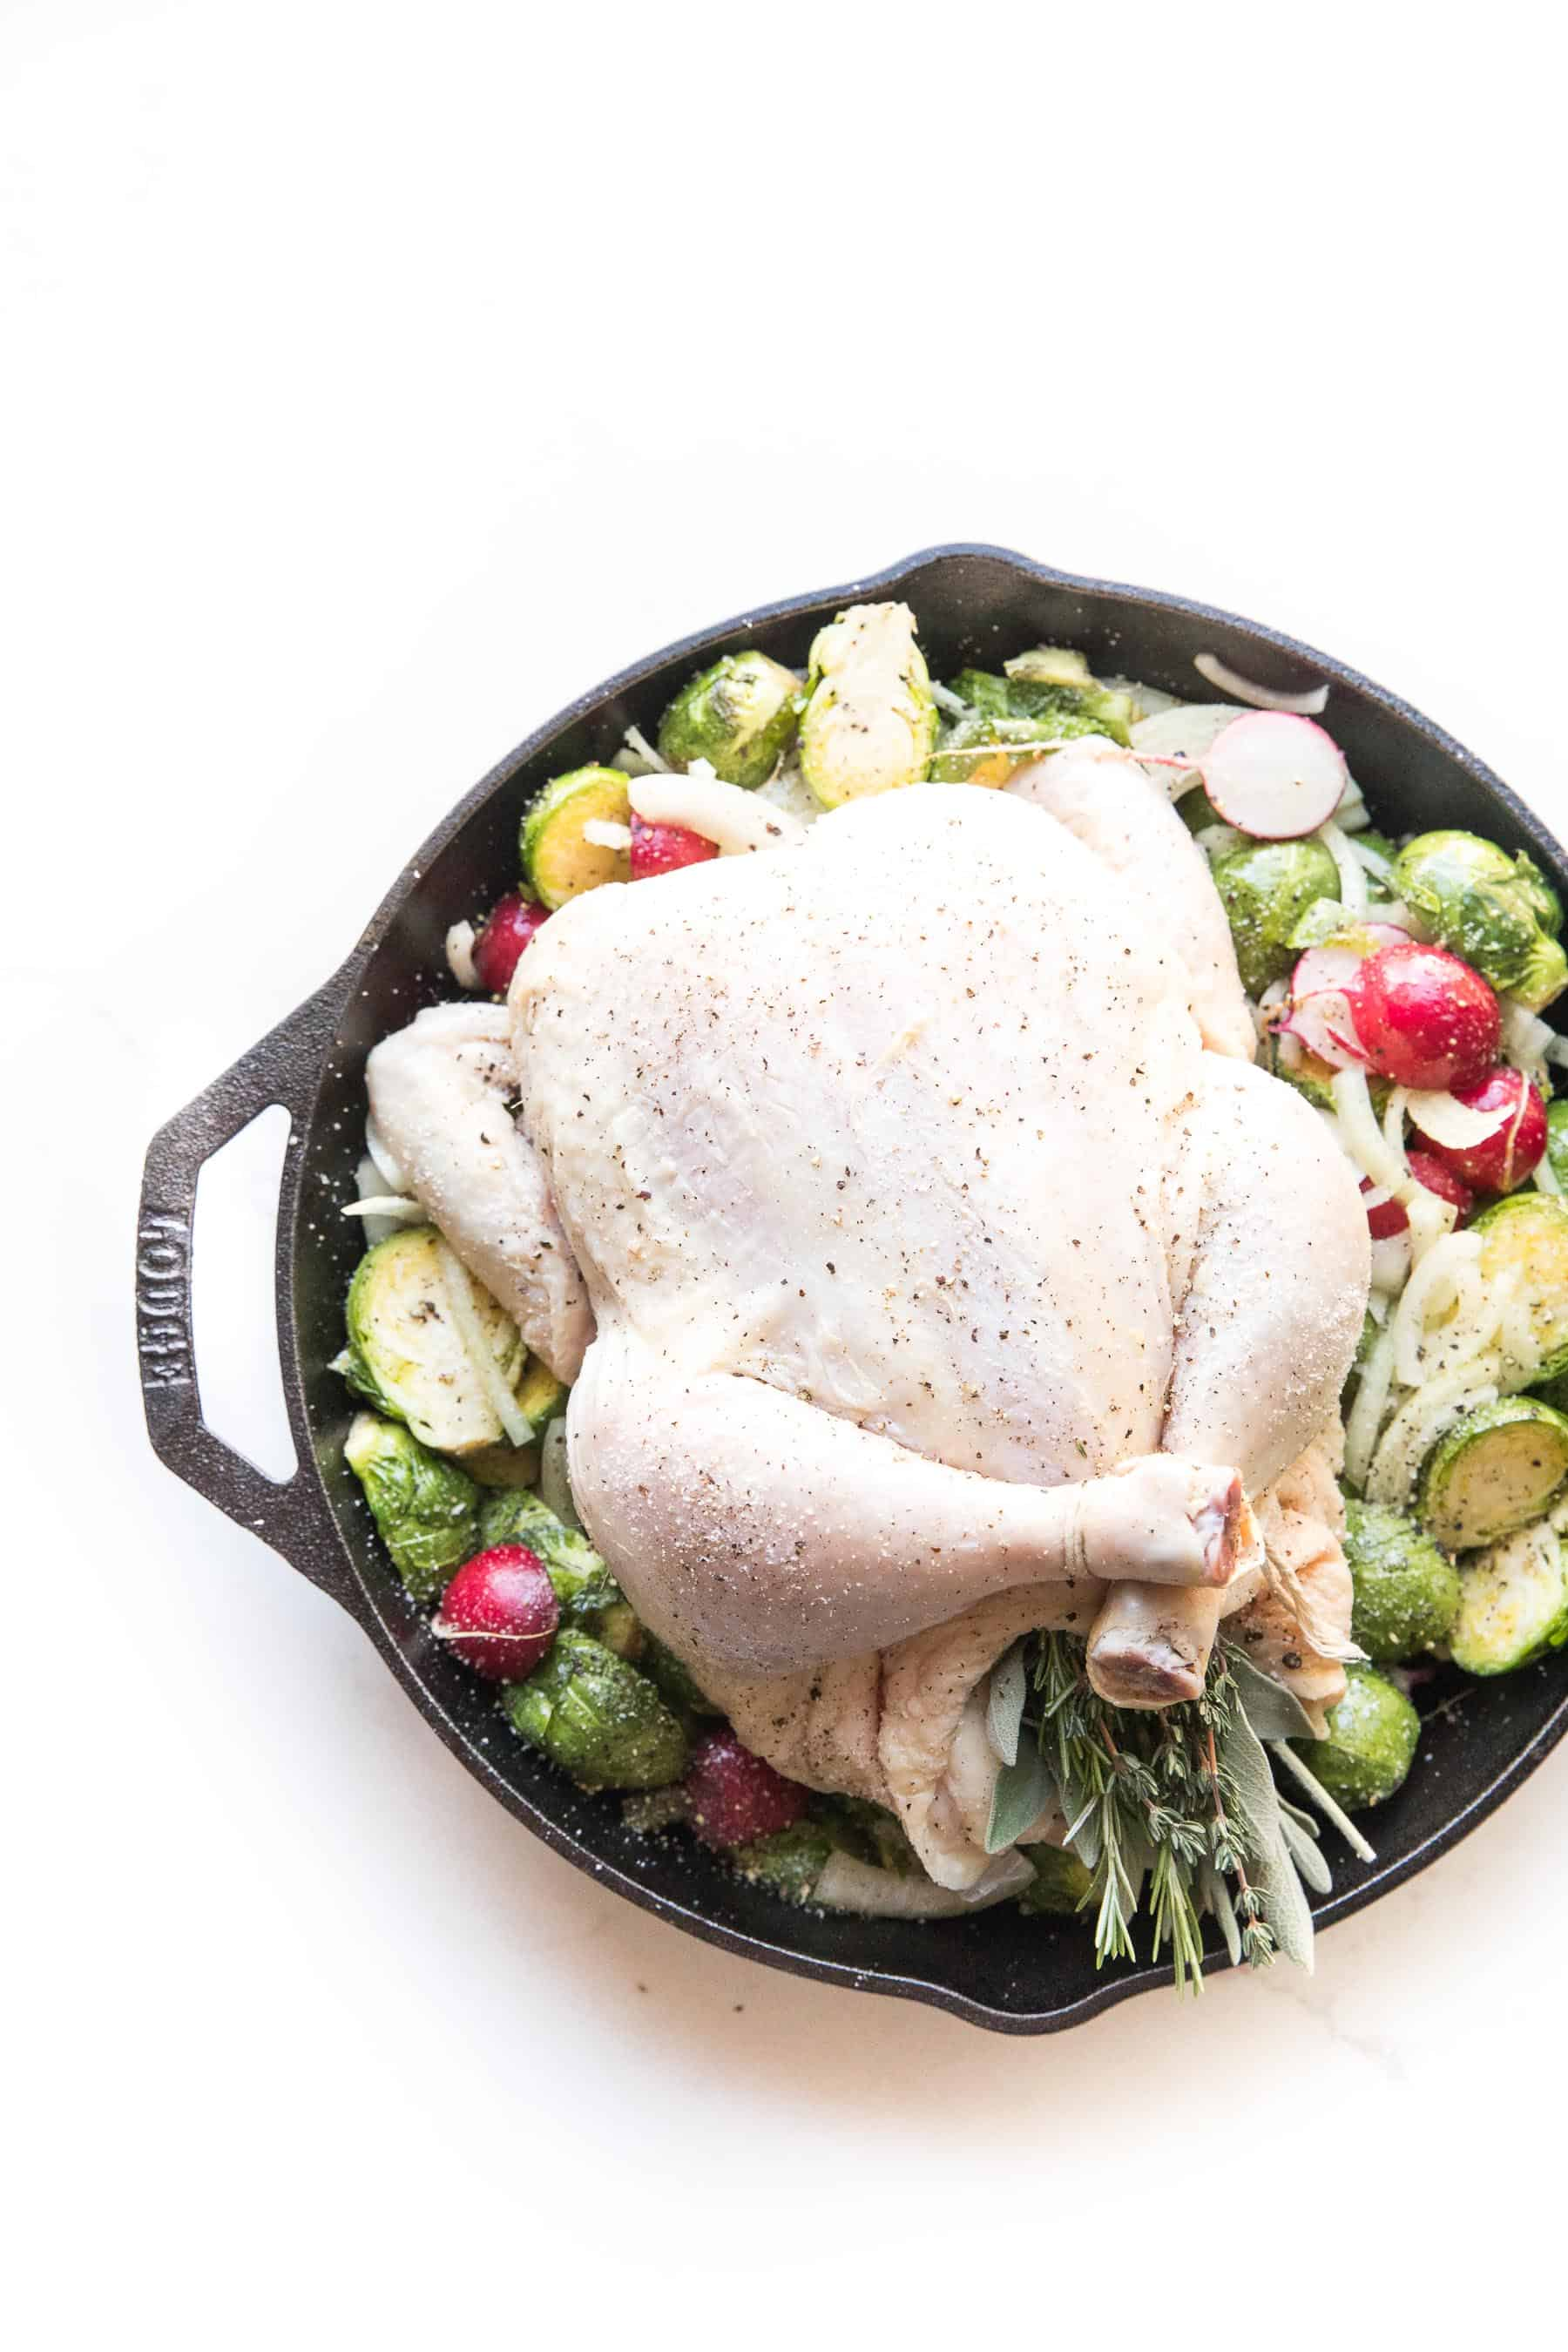 Whole30 + keto perfect roast chicken in a cast iron skillet with root vegetables